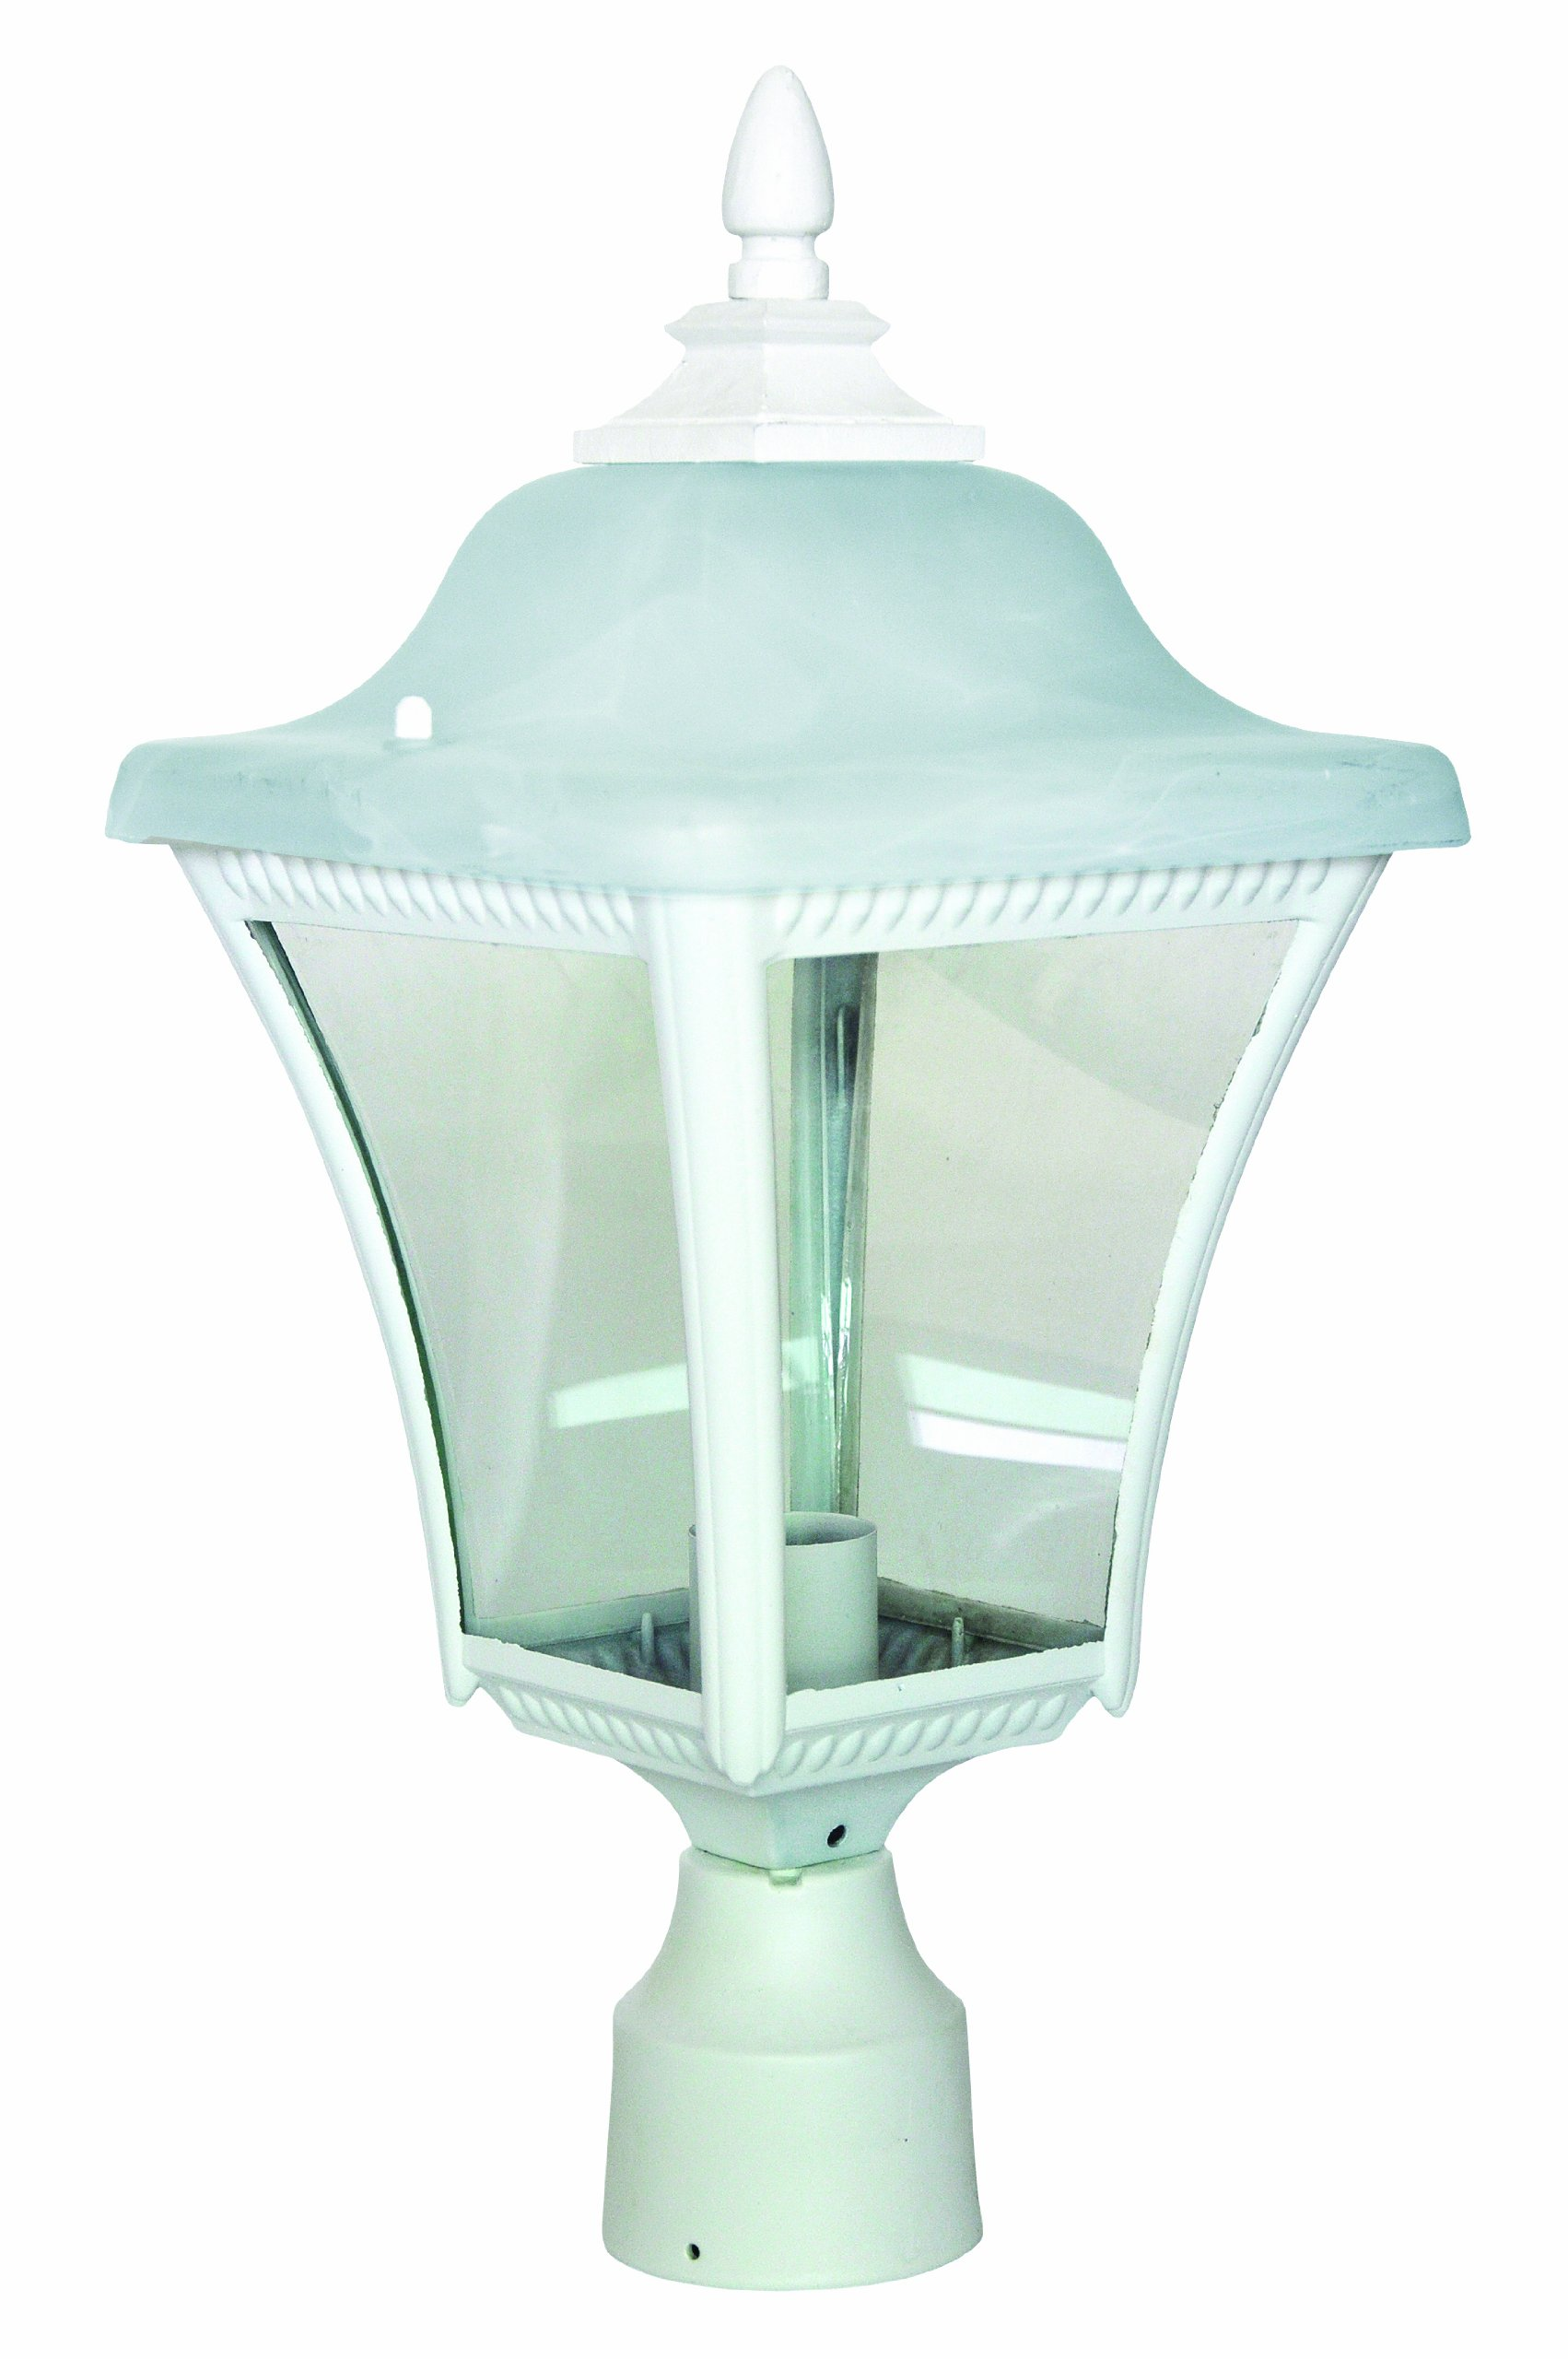 Park Madison Lighting PMO-990-30 1 Light Cast Aluminum Outdoor Post Head Fixture with Clear Beveled Glass Panels and White Finish,  H=17 3/4'' W=8 7/8''